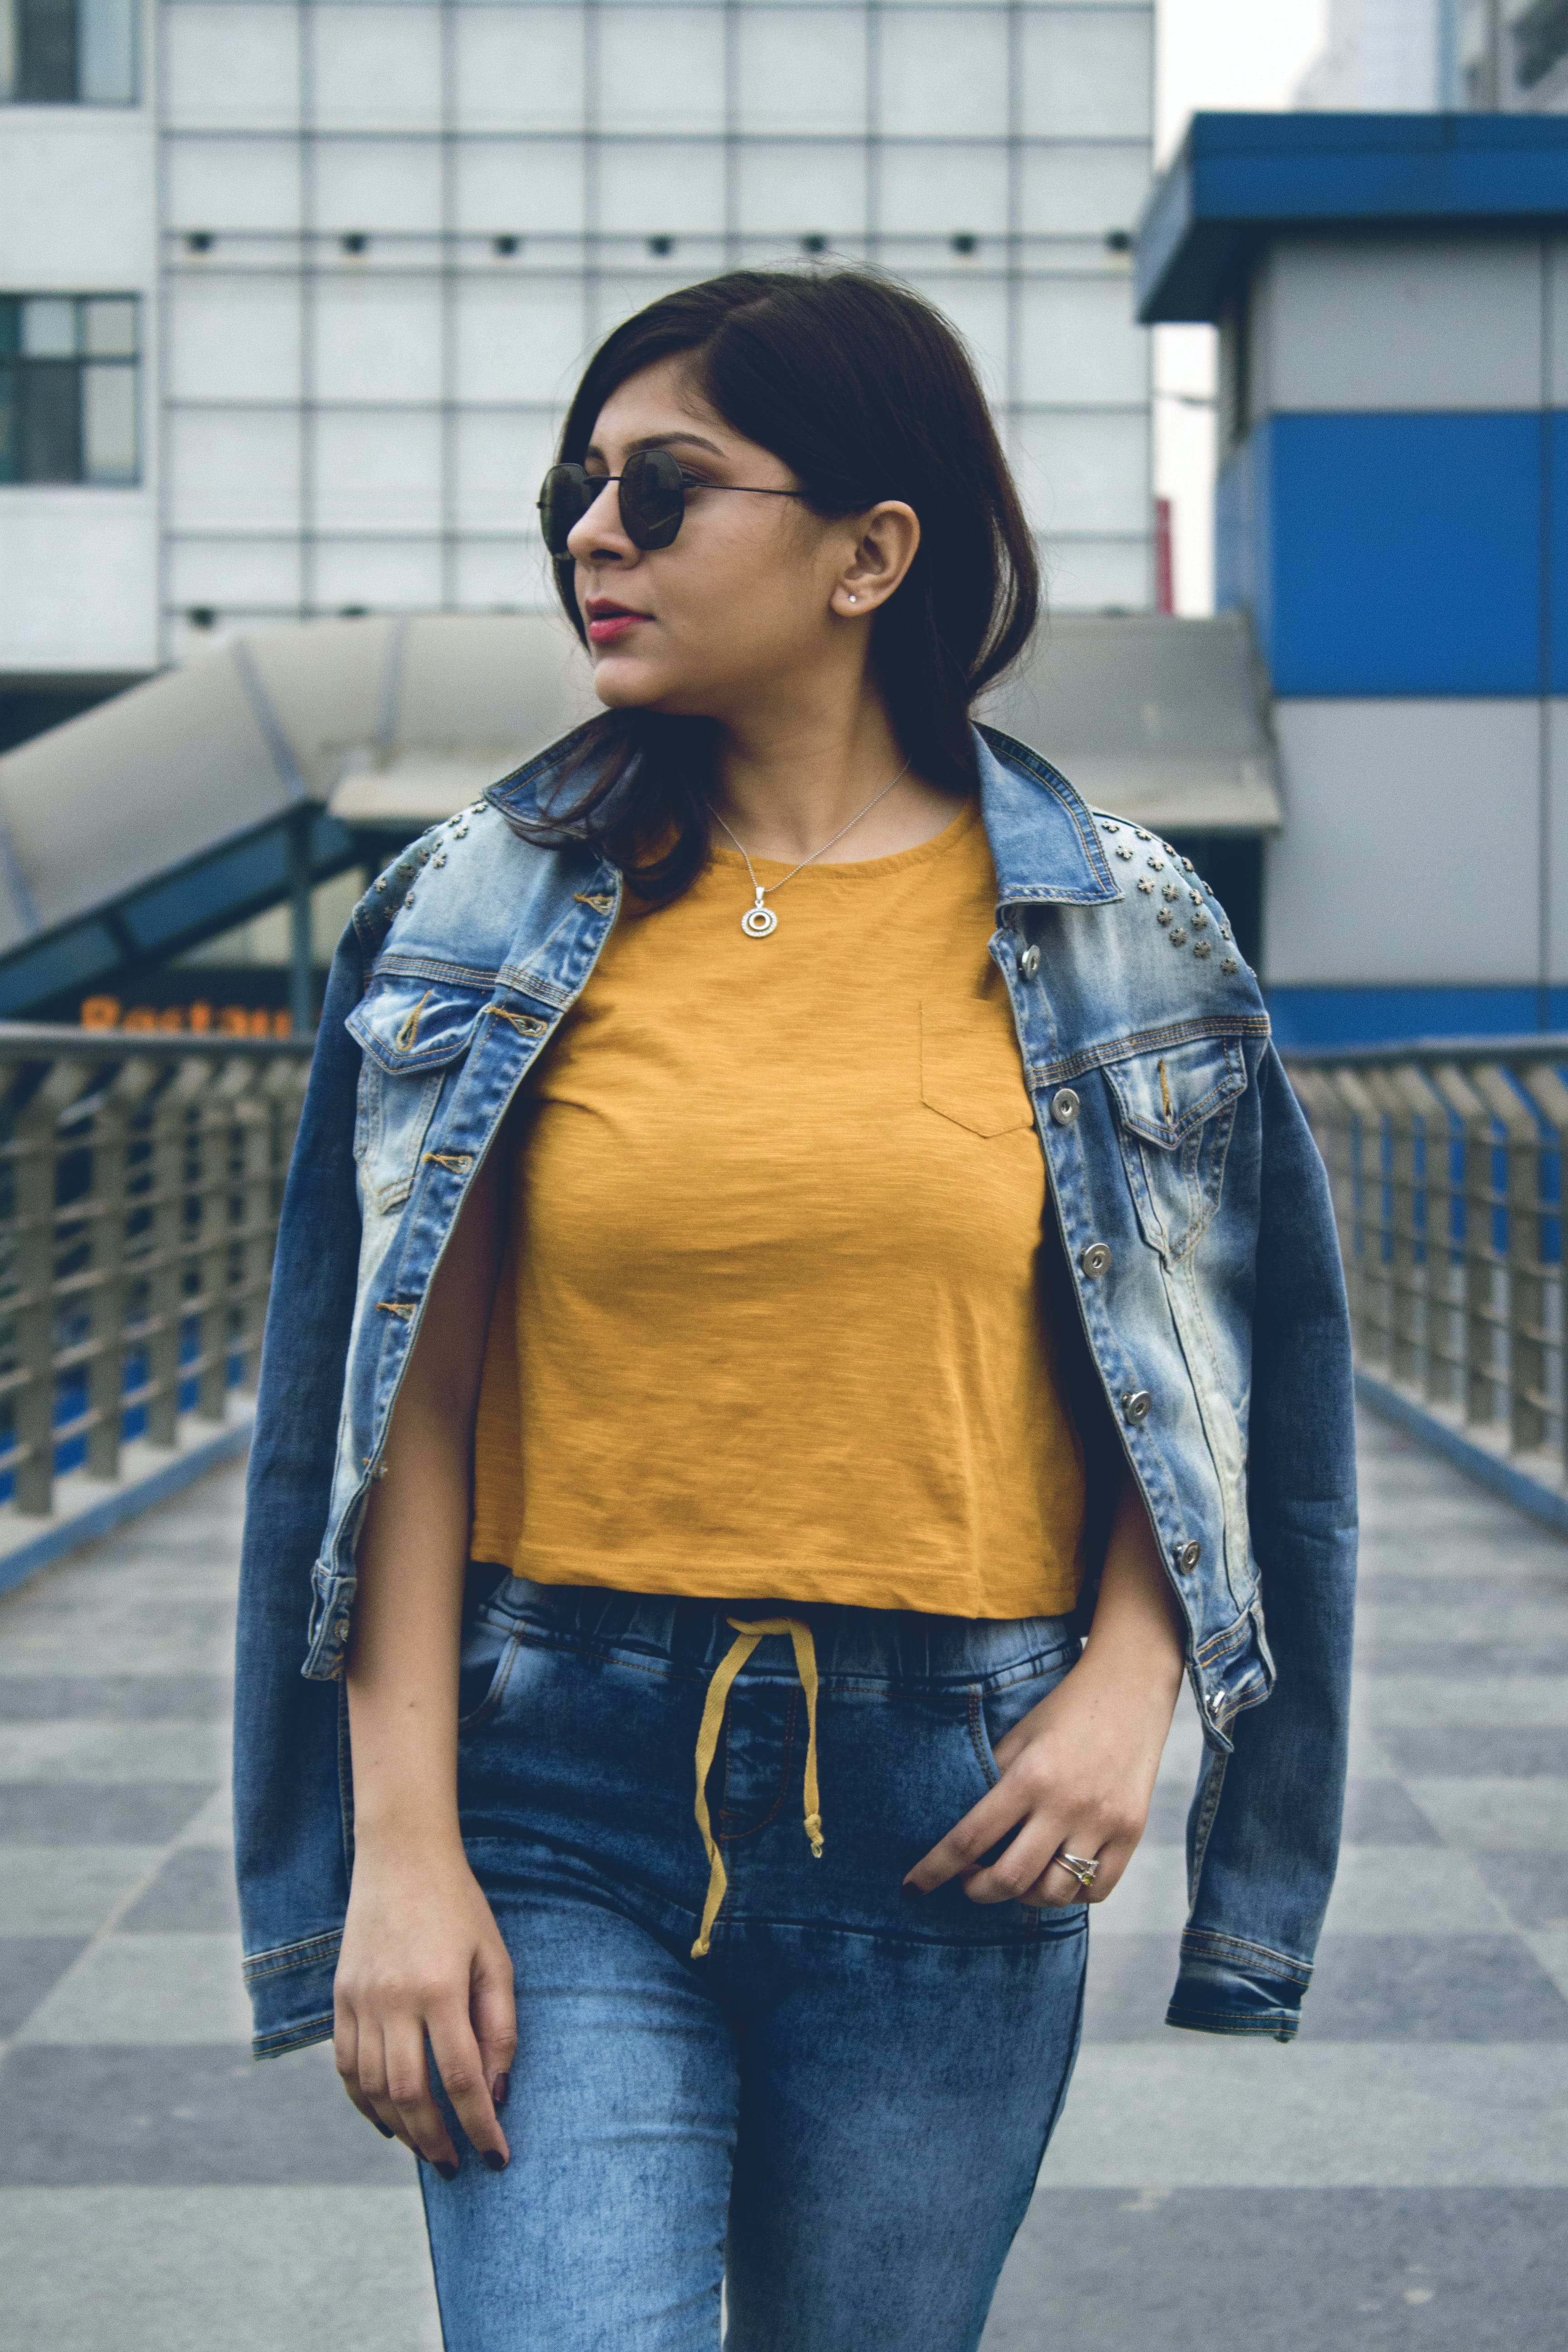 Photo of Woman Wearing Denim Jacket